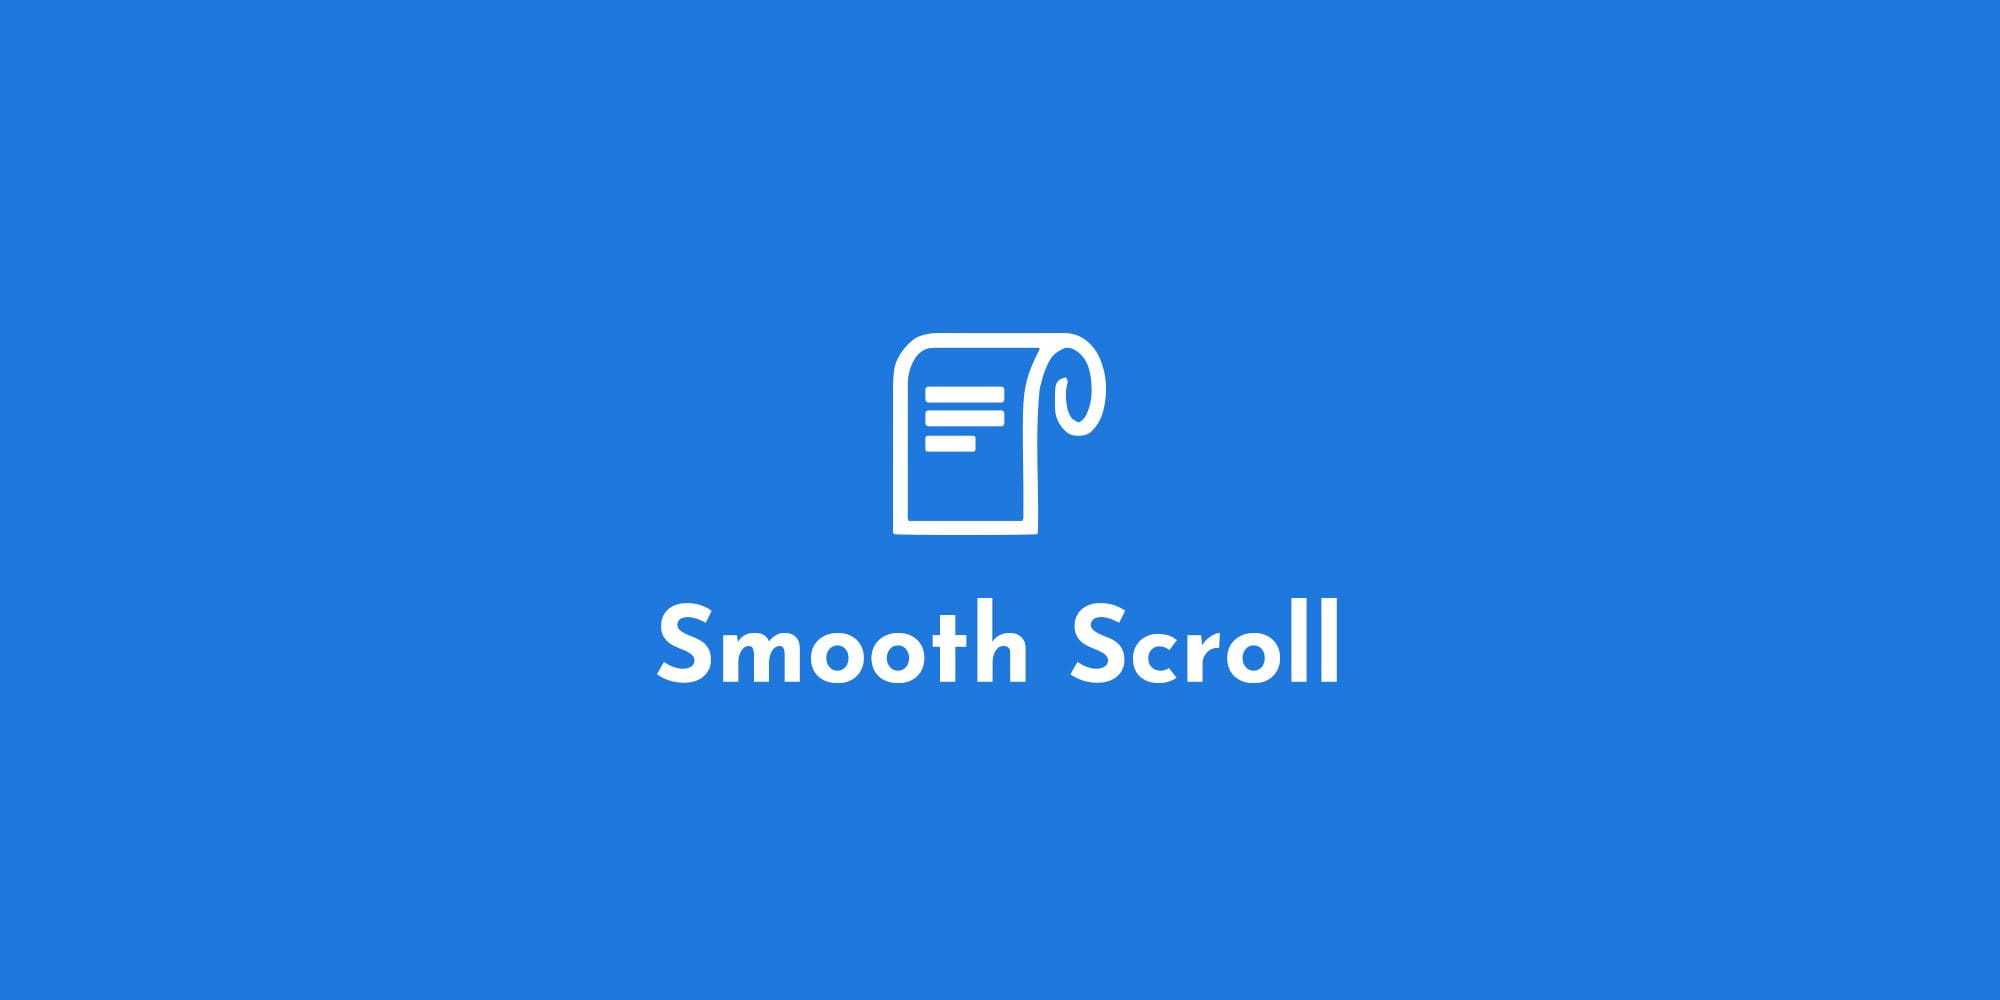 Smooth Scroll